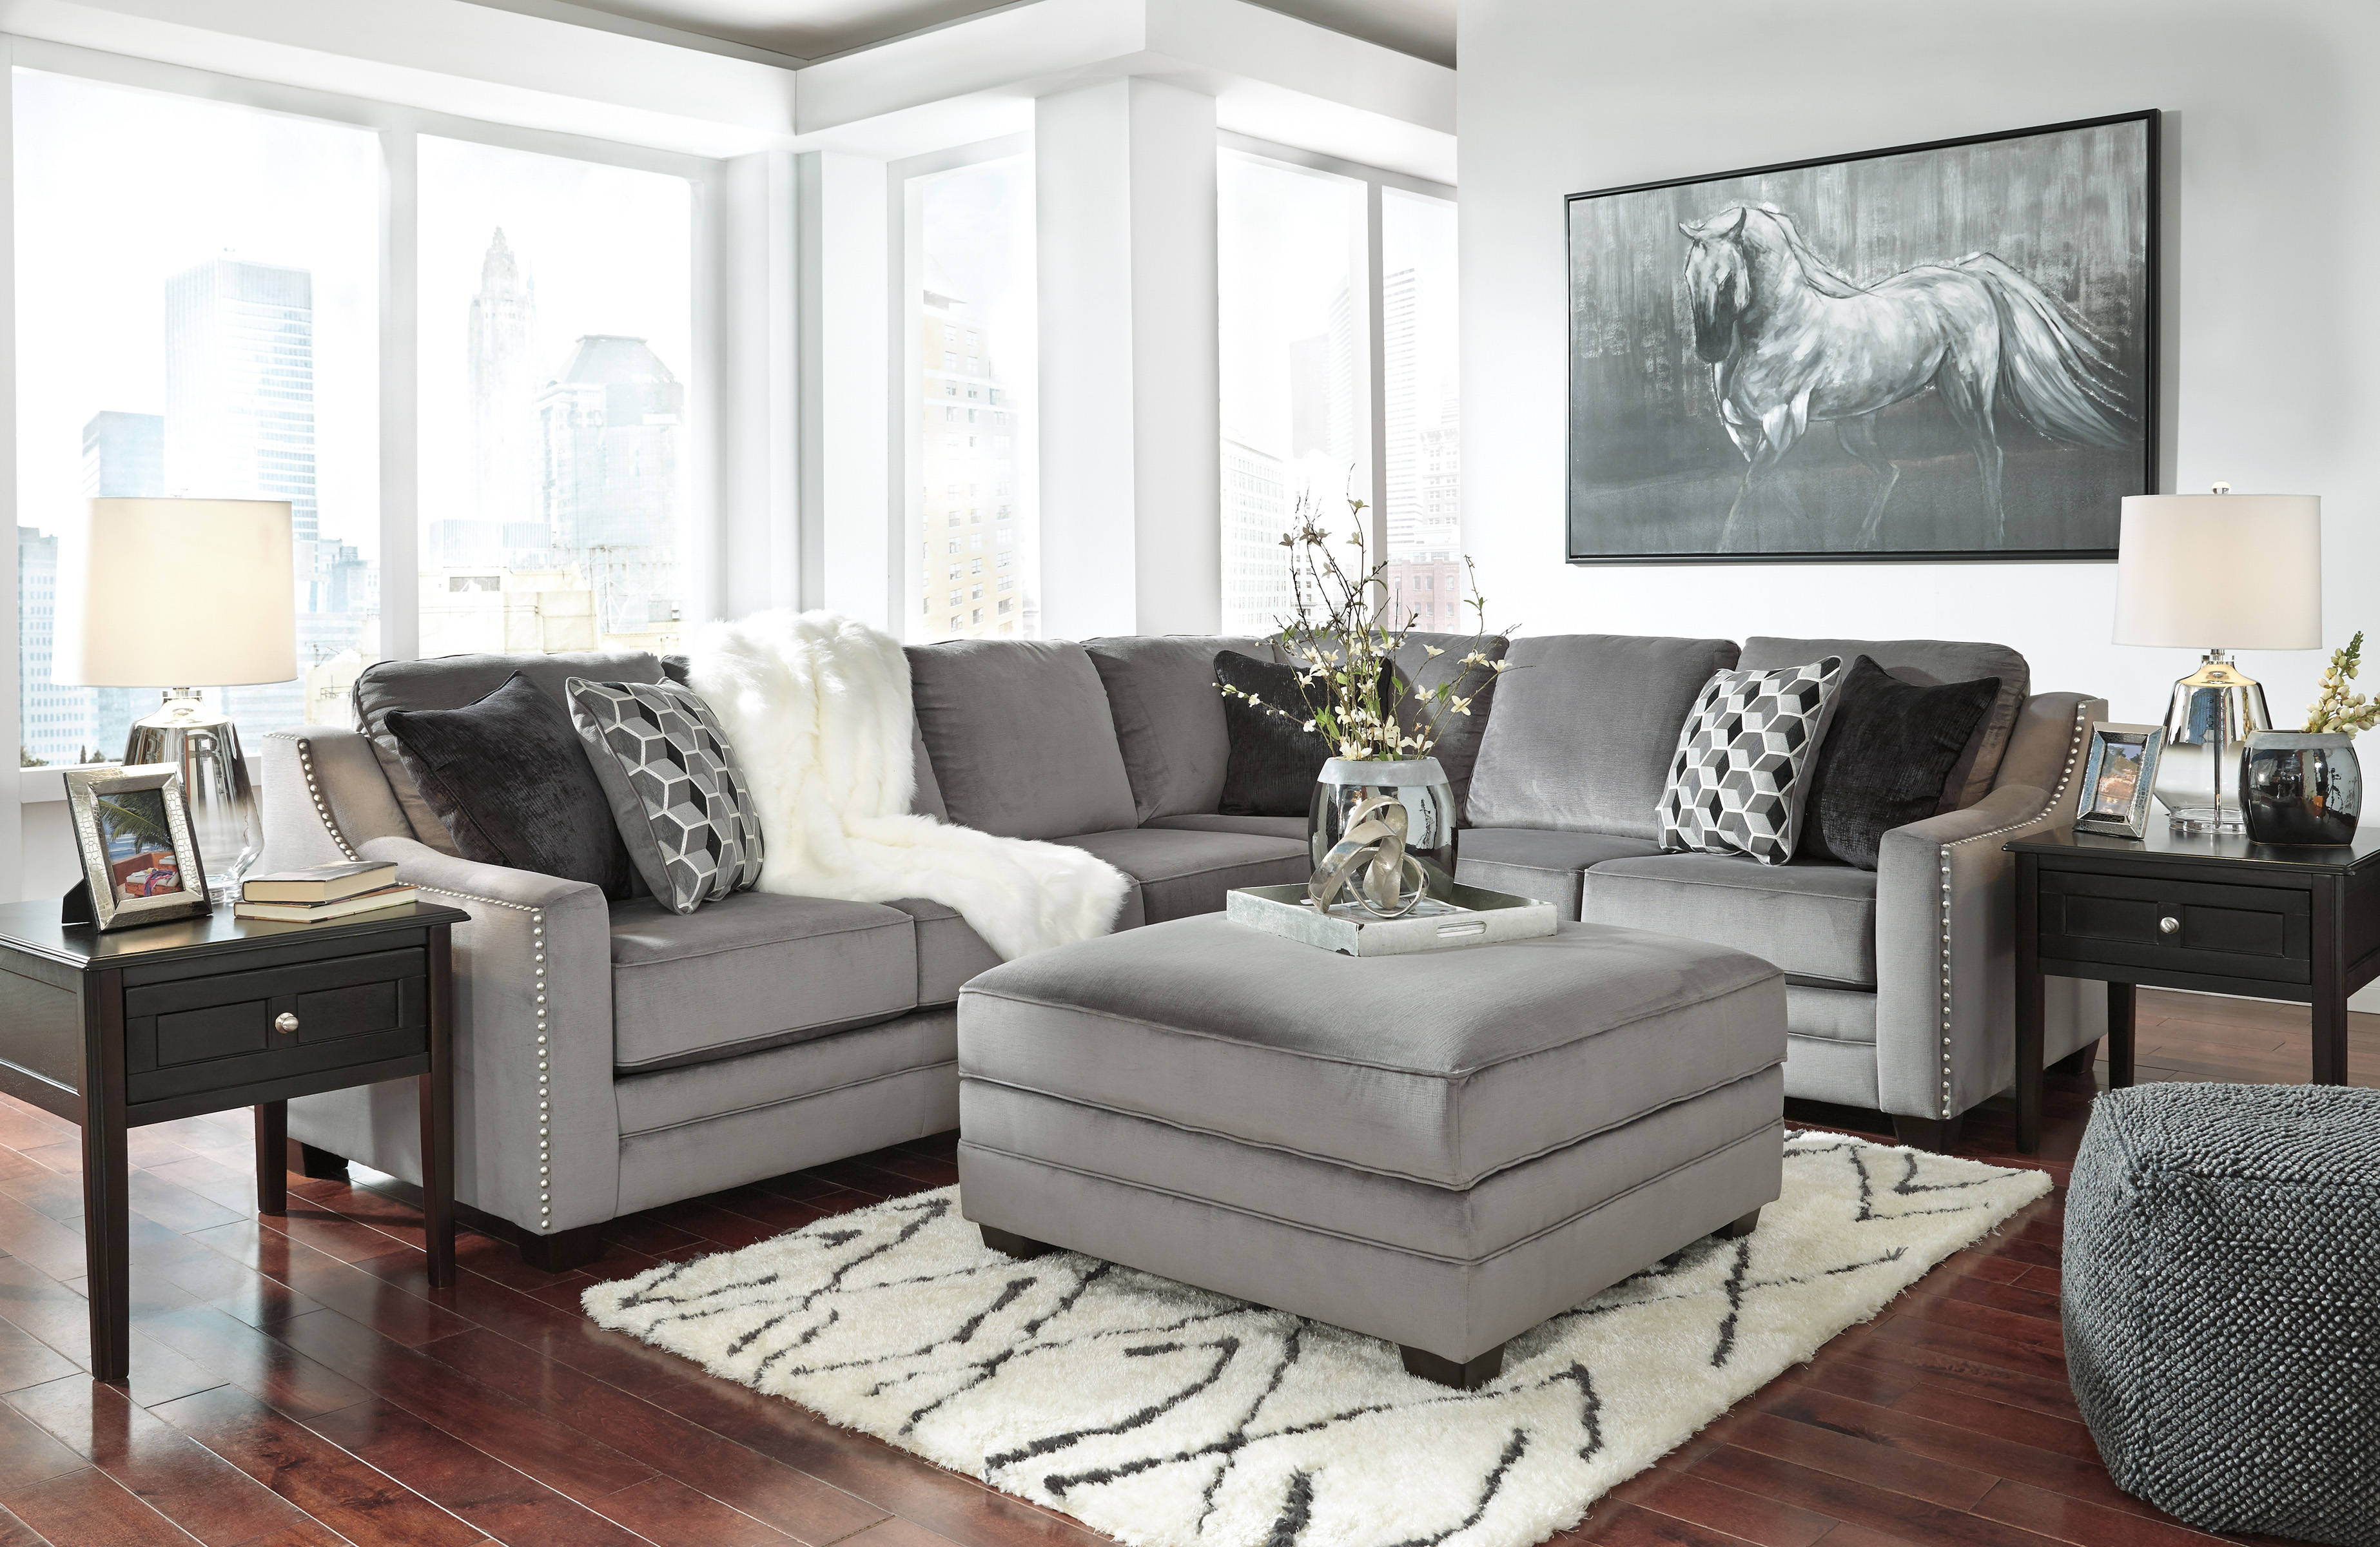 Tremendous Ashley Furniture Bicknell Charcoal Laf Sofa And Ottoman Pdpeps Interior Chair Design Pdpepsorg